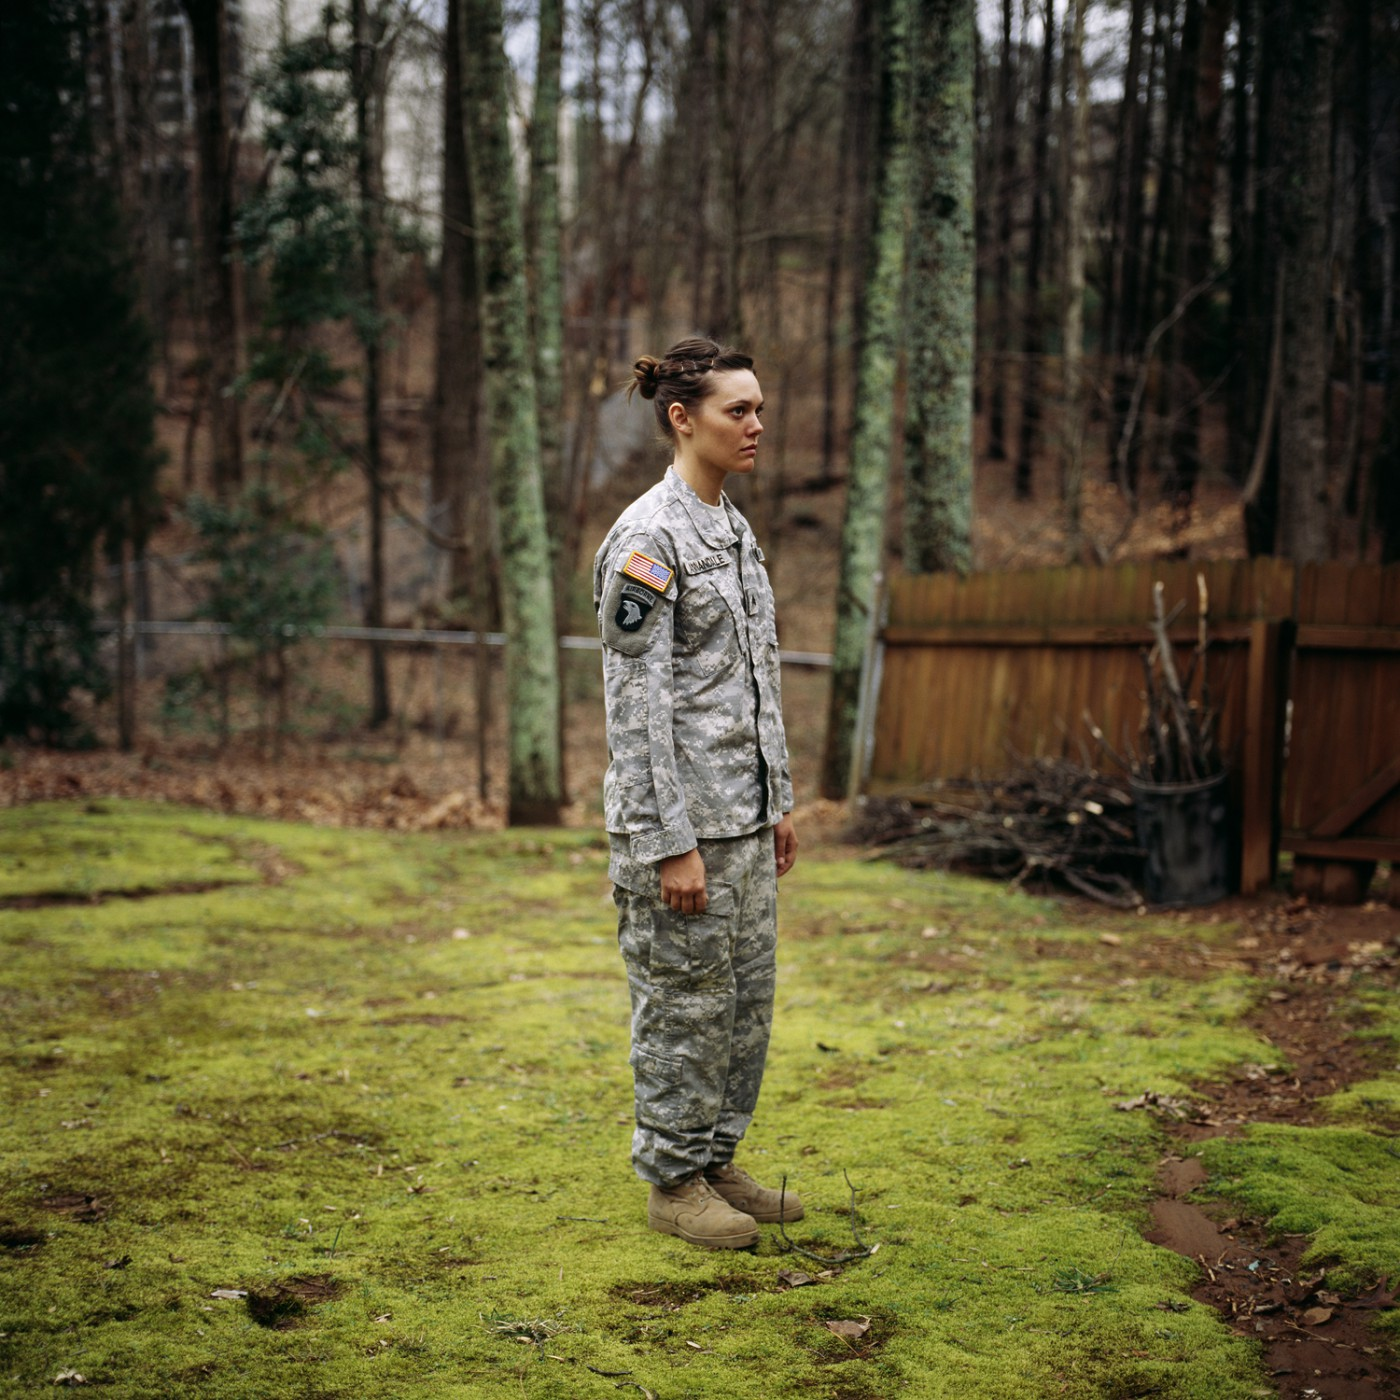 Guillaume Simoneau, </span><span><em>Wearing army uniform for me, Kennesaw, Georgia</em>, </span><span>2008